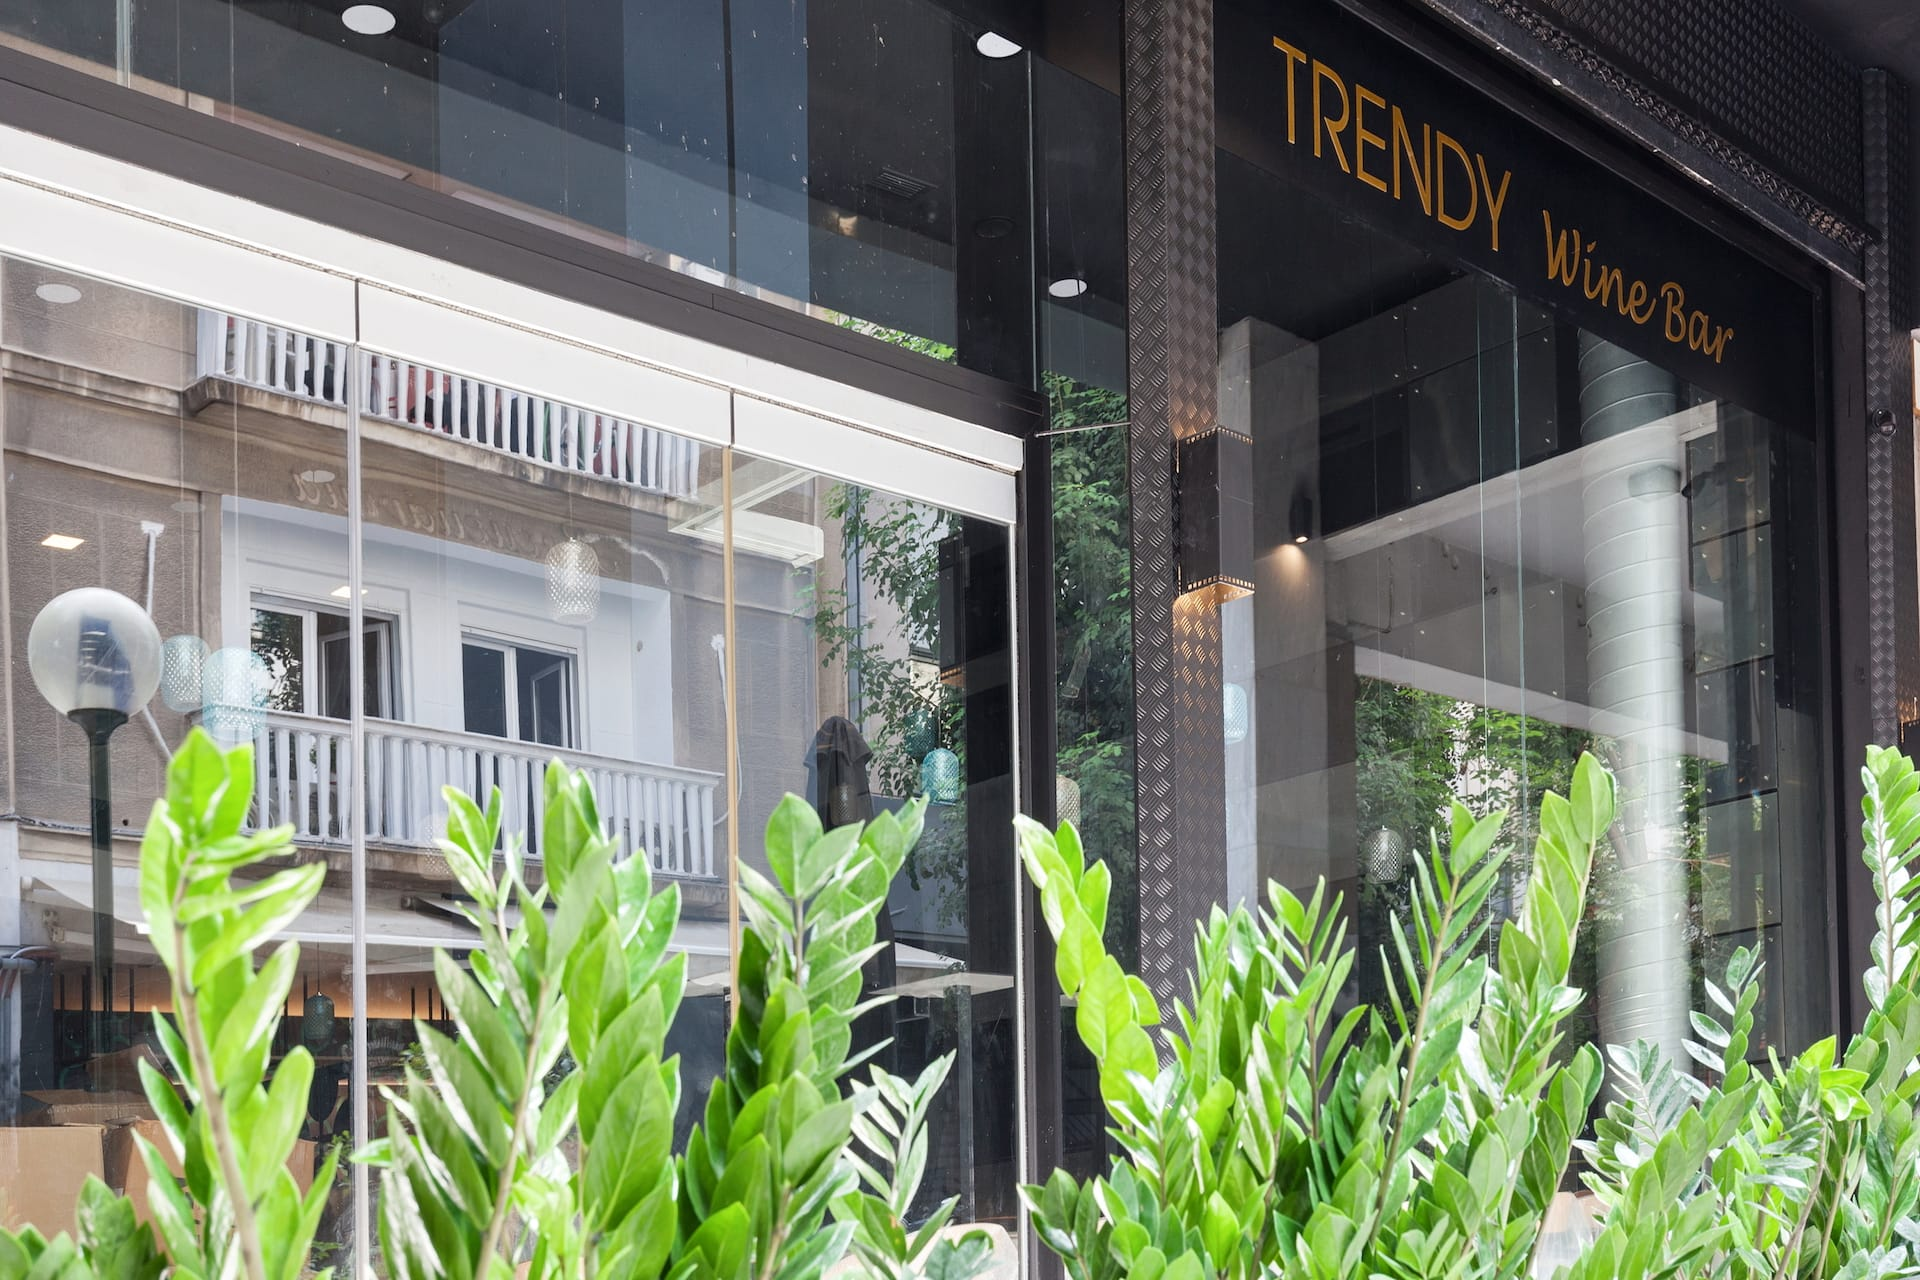 The Trendy by Athens Prime Hotels entrance with big black doorway, and gold sign.